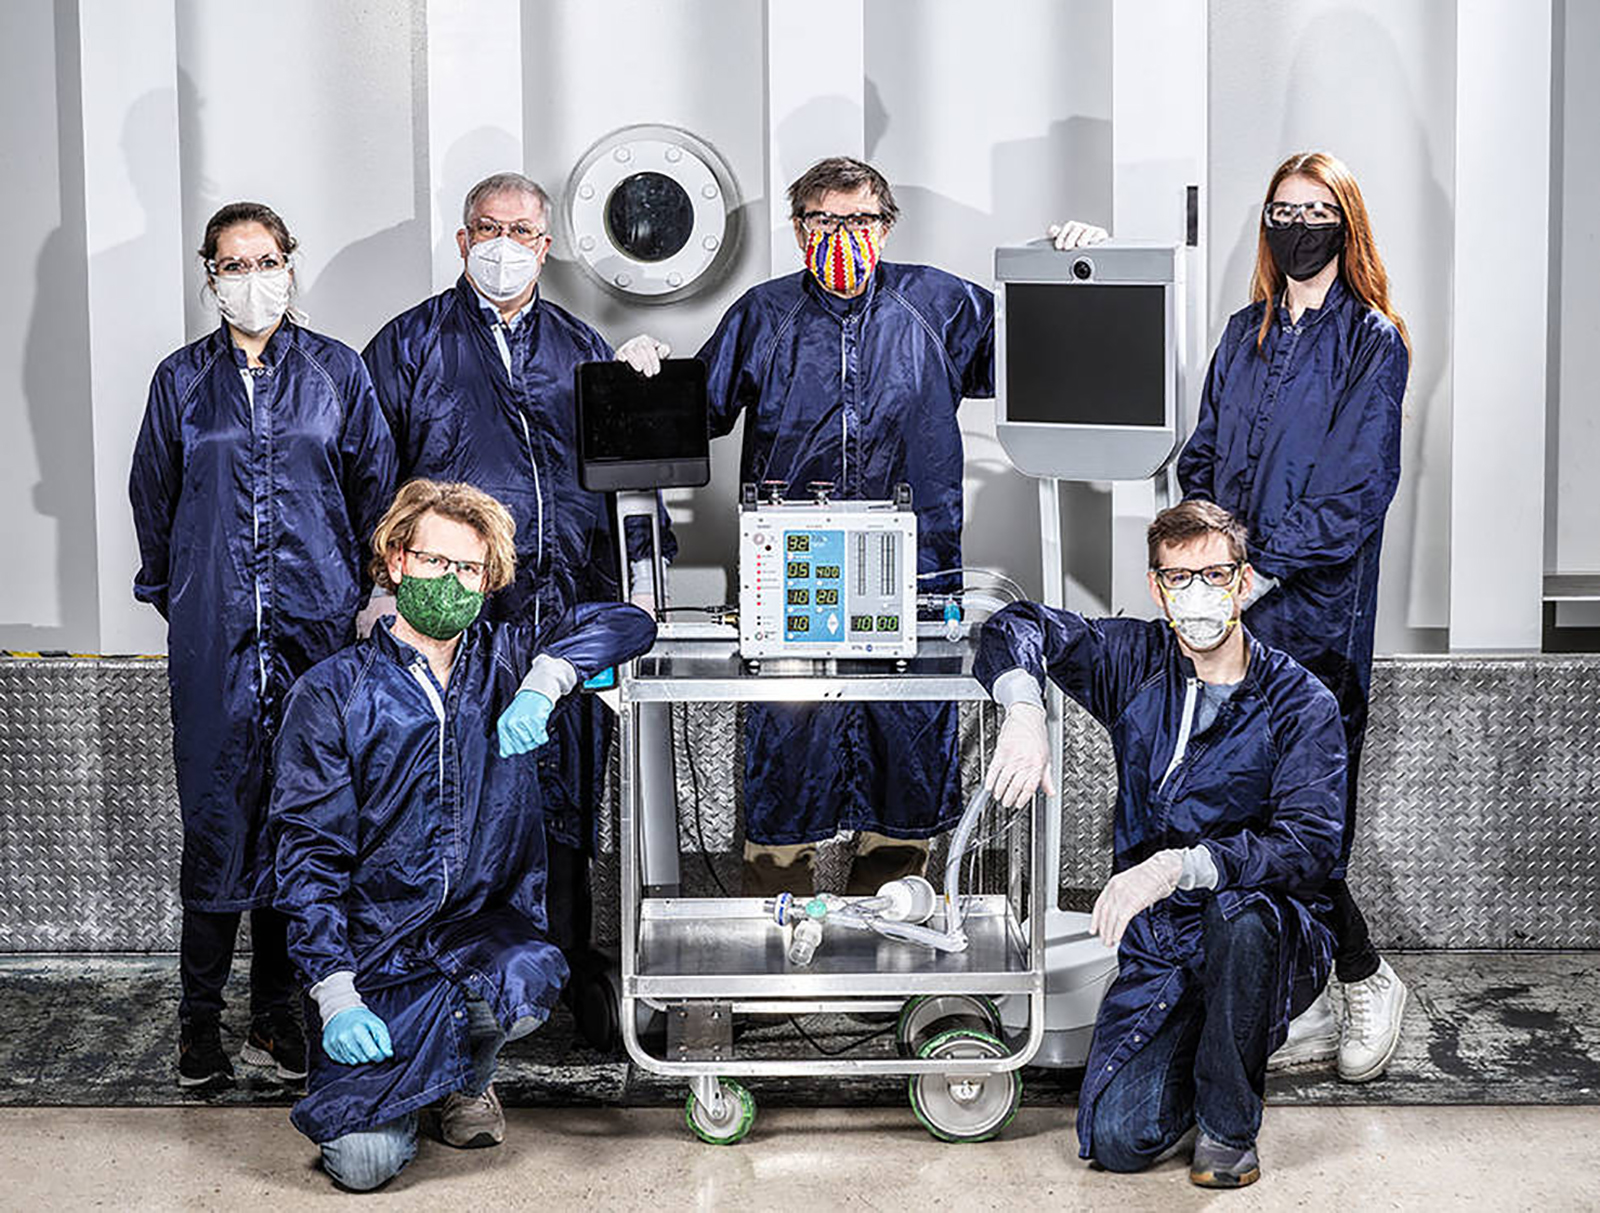 Pictured are engineers at NASA's Jet Propulsion Laboratory in Pasadena, who created a ventilator prototype designed to help coronavirus patients. (Dan Goods/NASA/JPL-Caltech)